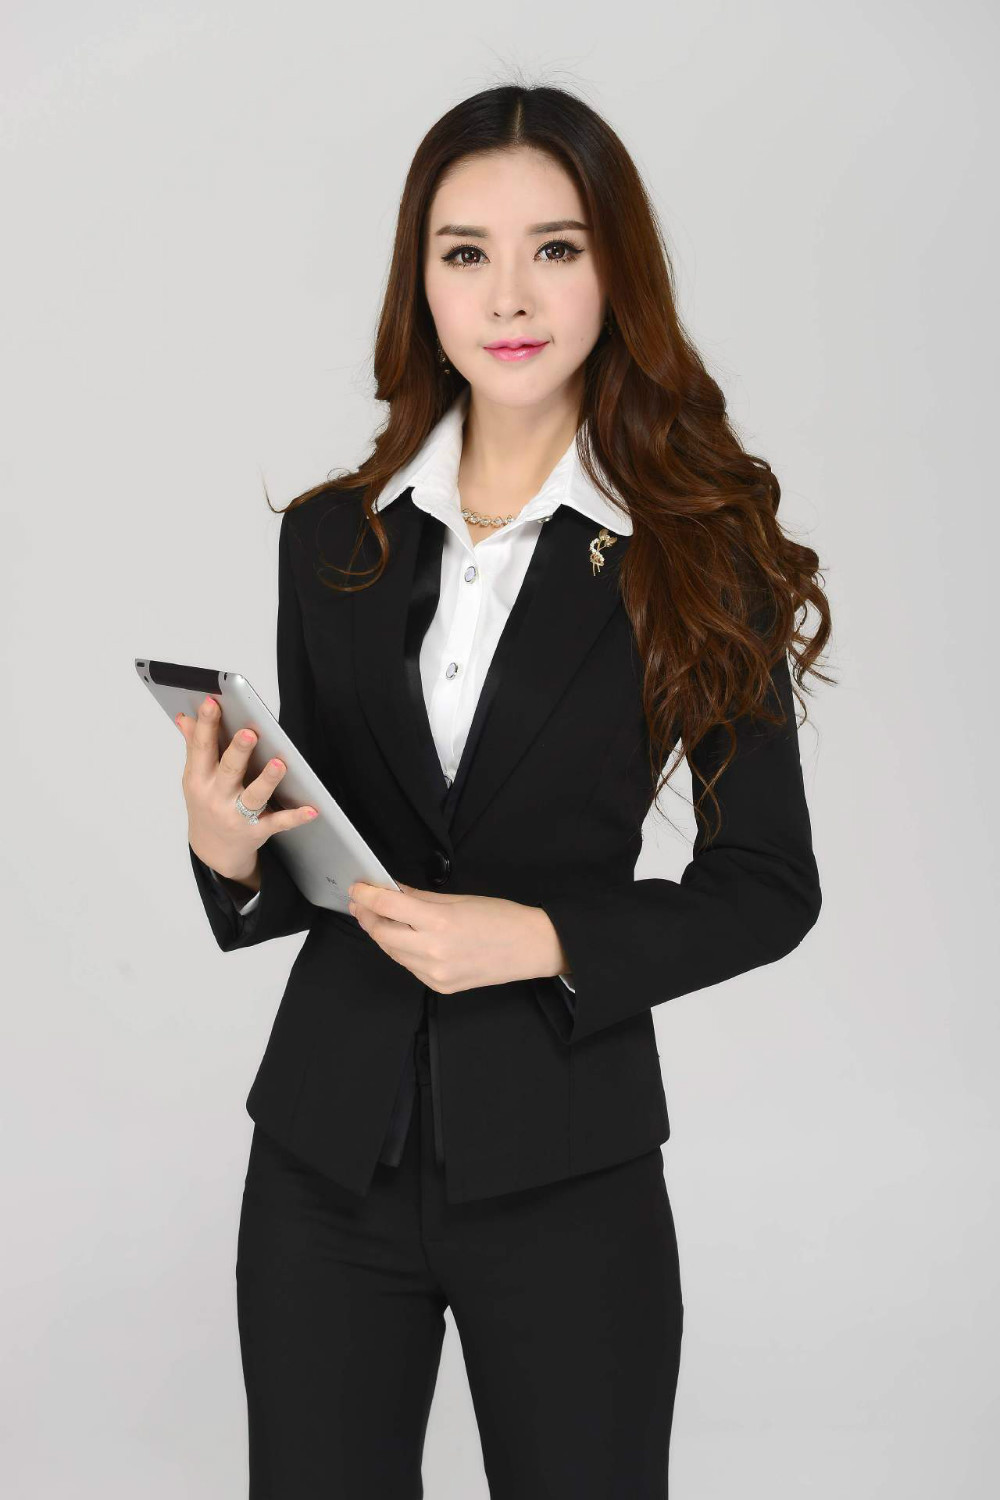 white-collar-women-business-attire-2014-fashionable-ladies-business-suits-women-business-suits-formal-office-suits.jpg